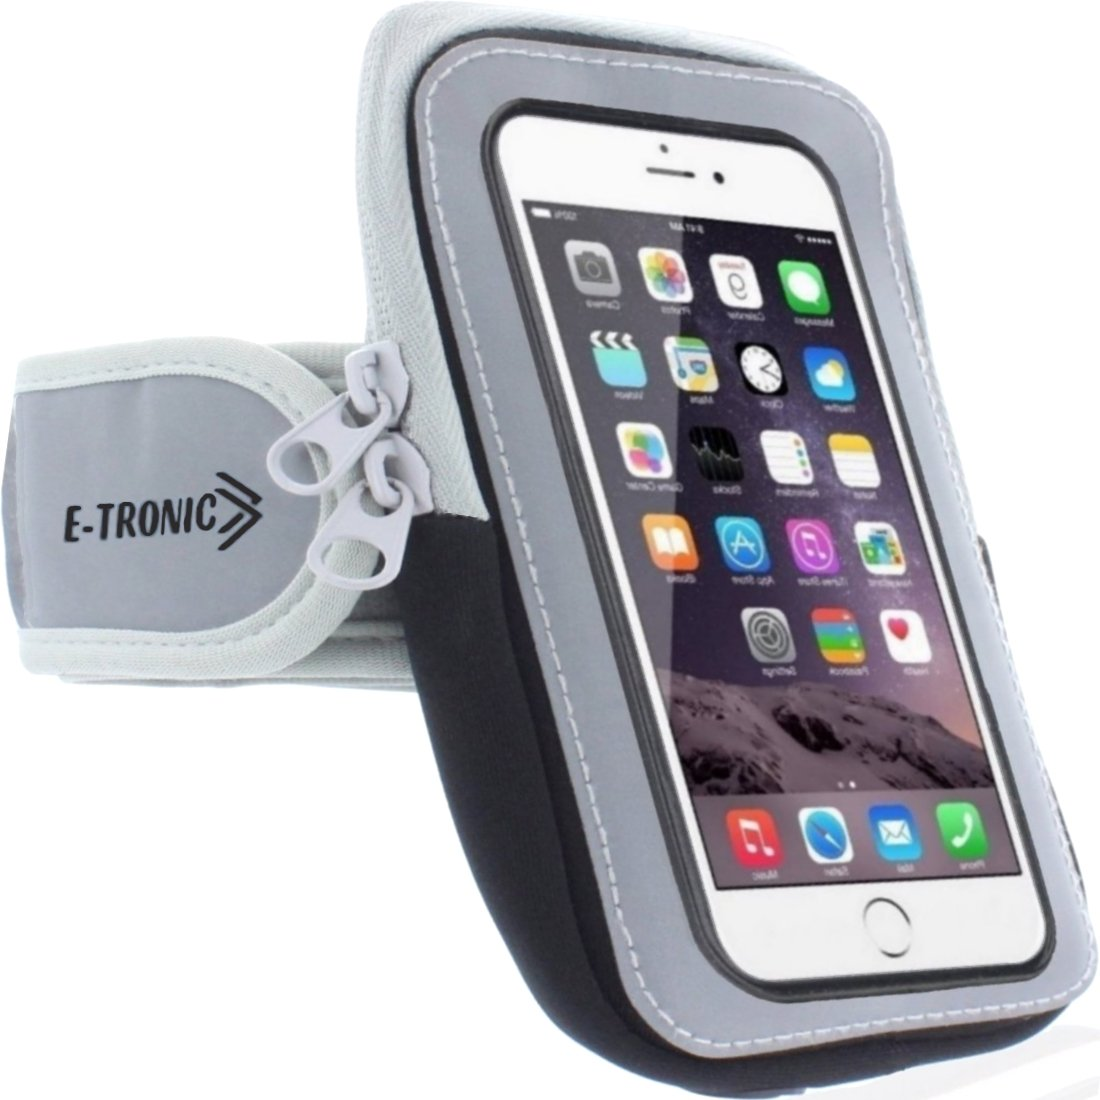 Sports Armband: Cell Phone Holder Case Arm Band Strap With Zipper Pouch/ Mobile Exercise Running Workout For Apple iPhone 6 6S 7 Plus Touch Android Samsung Galaxy S5 S6 S7 Note 4 5 Edge LG HTC Pixel by E Tronic Edge (Image #1)